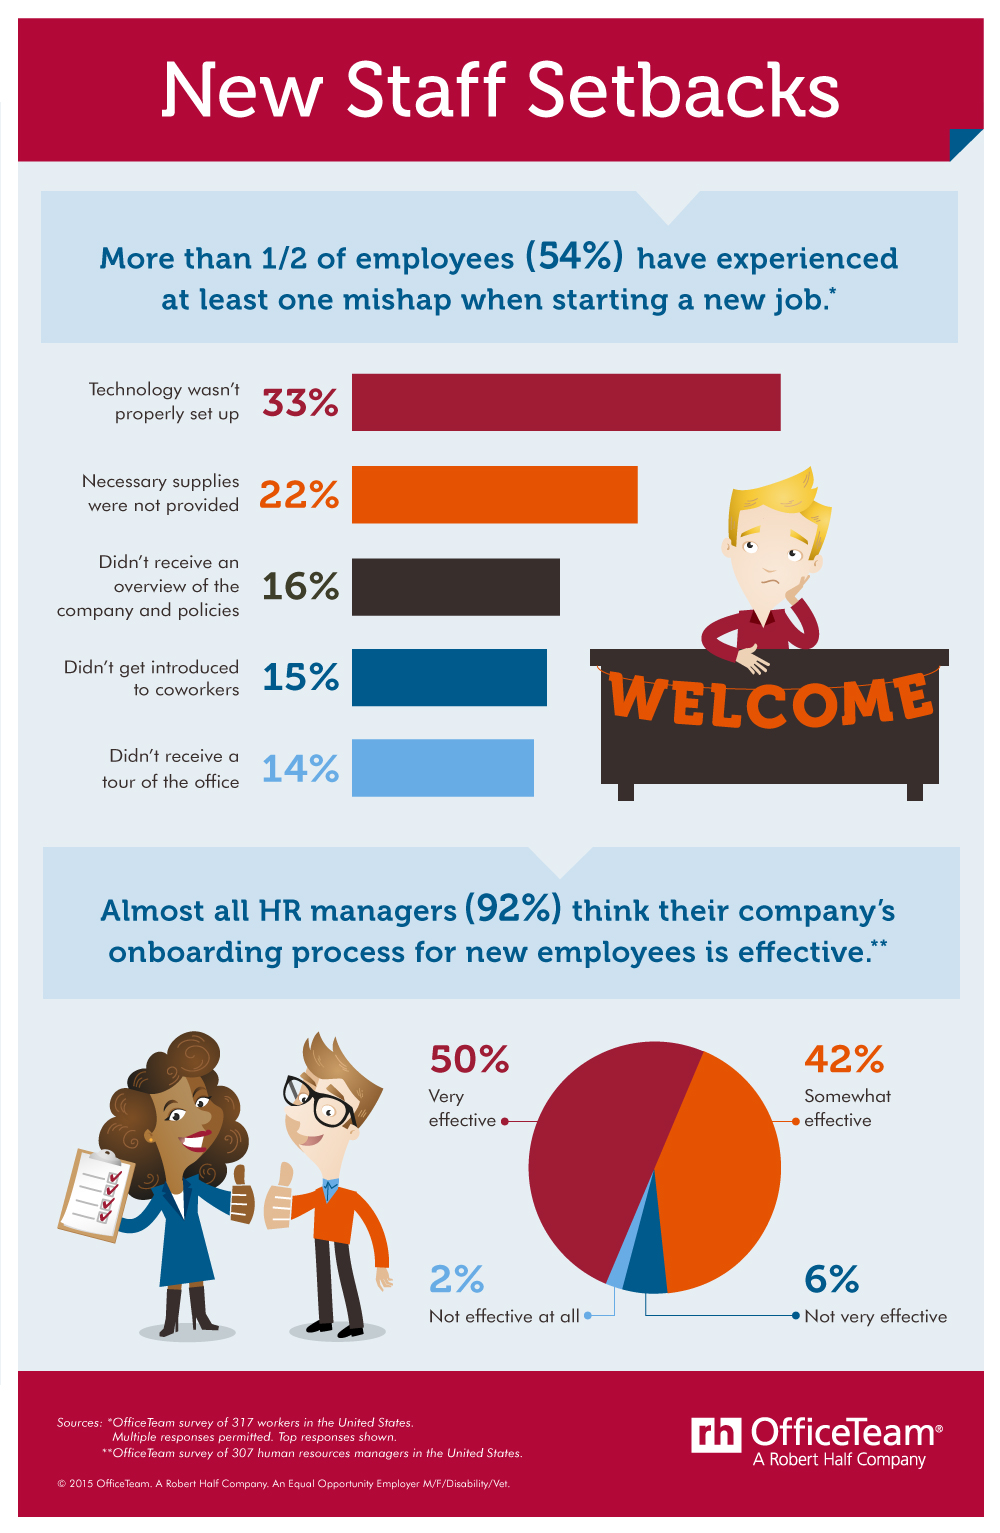 Infographic depicting the success and failures of new hire onboarding